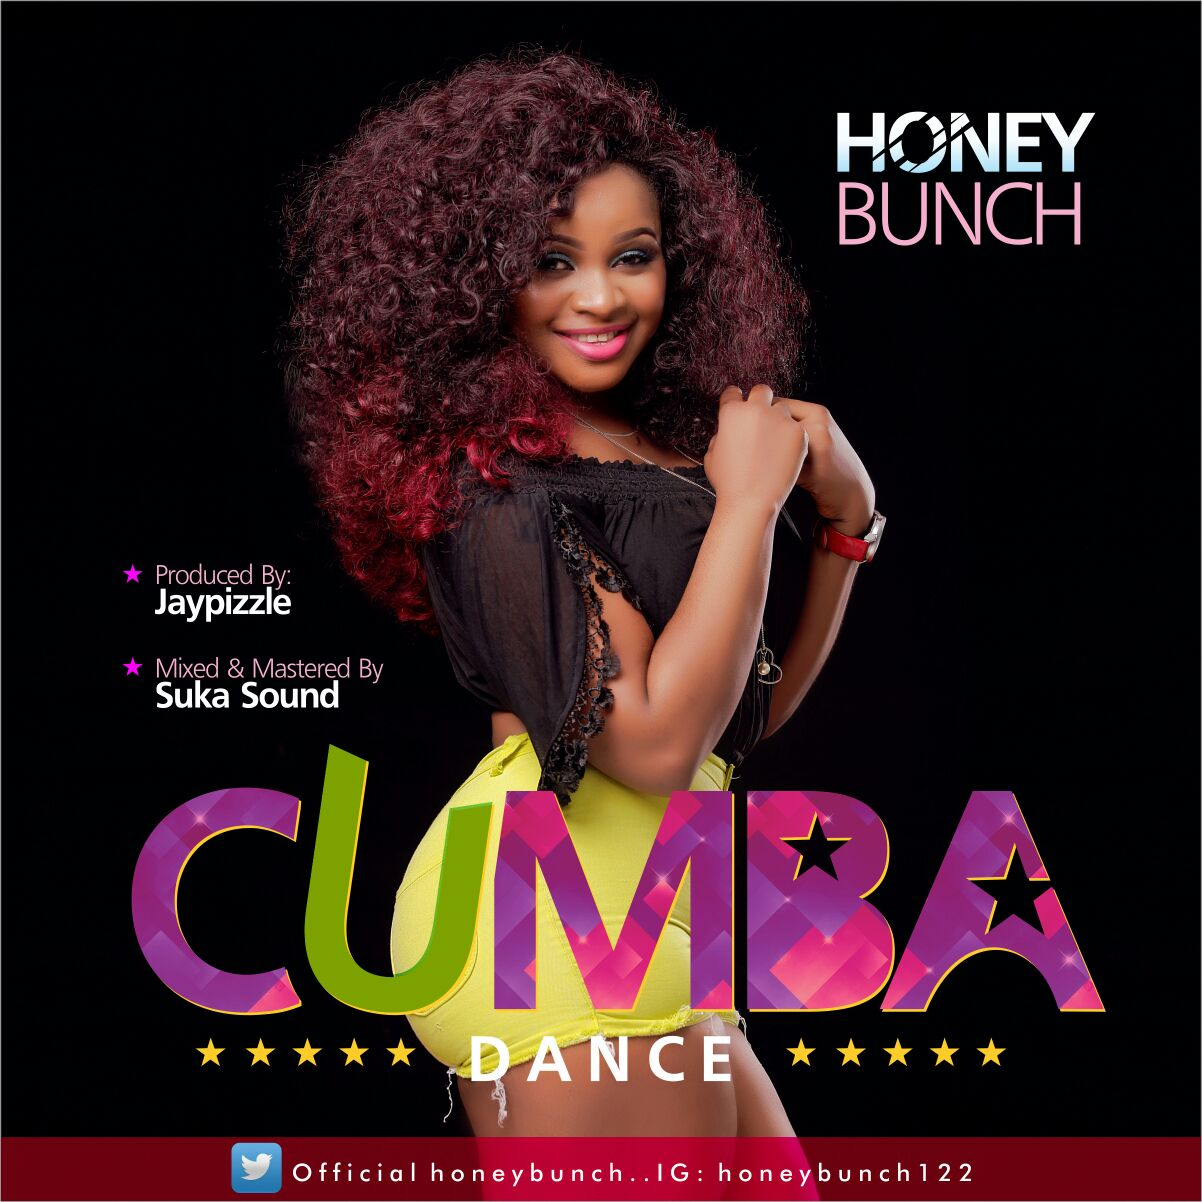 Honey Bunch - Cumba (Dance)-ART